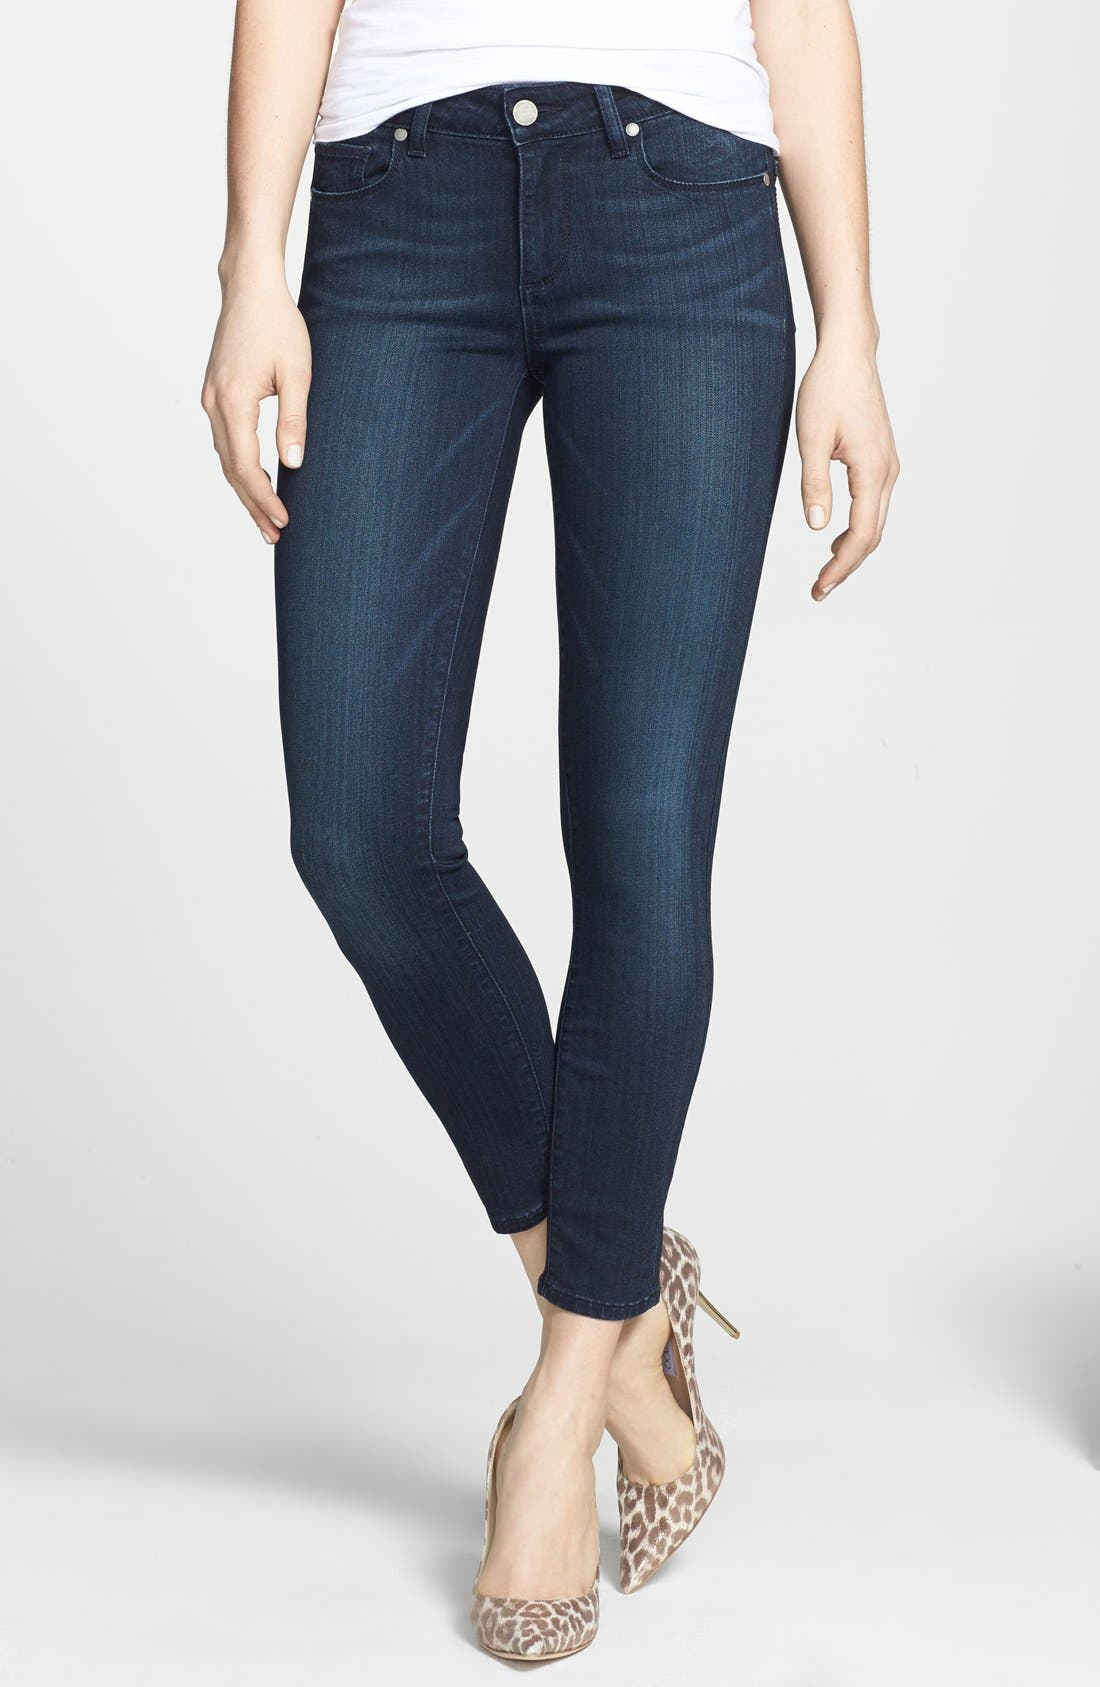 Alternate Image 1 Selected - PAIGE 'Transcend - Verdugo' Crop Skinny Jeans (Midlake)